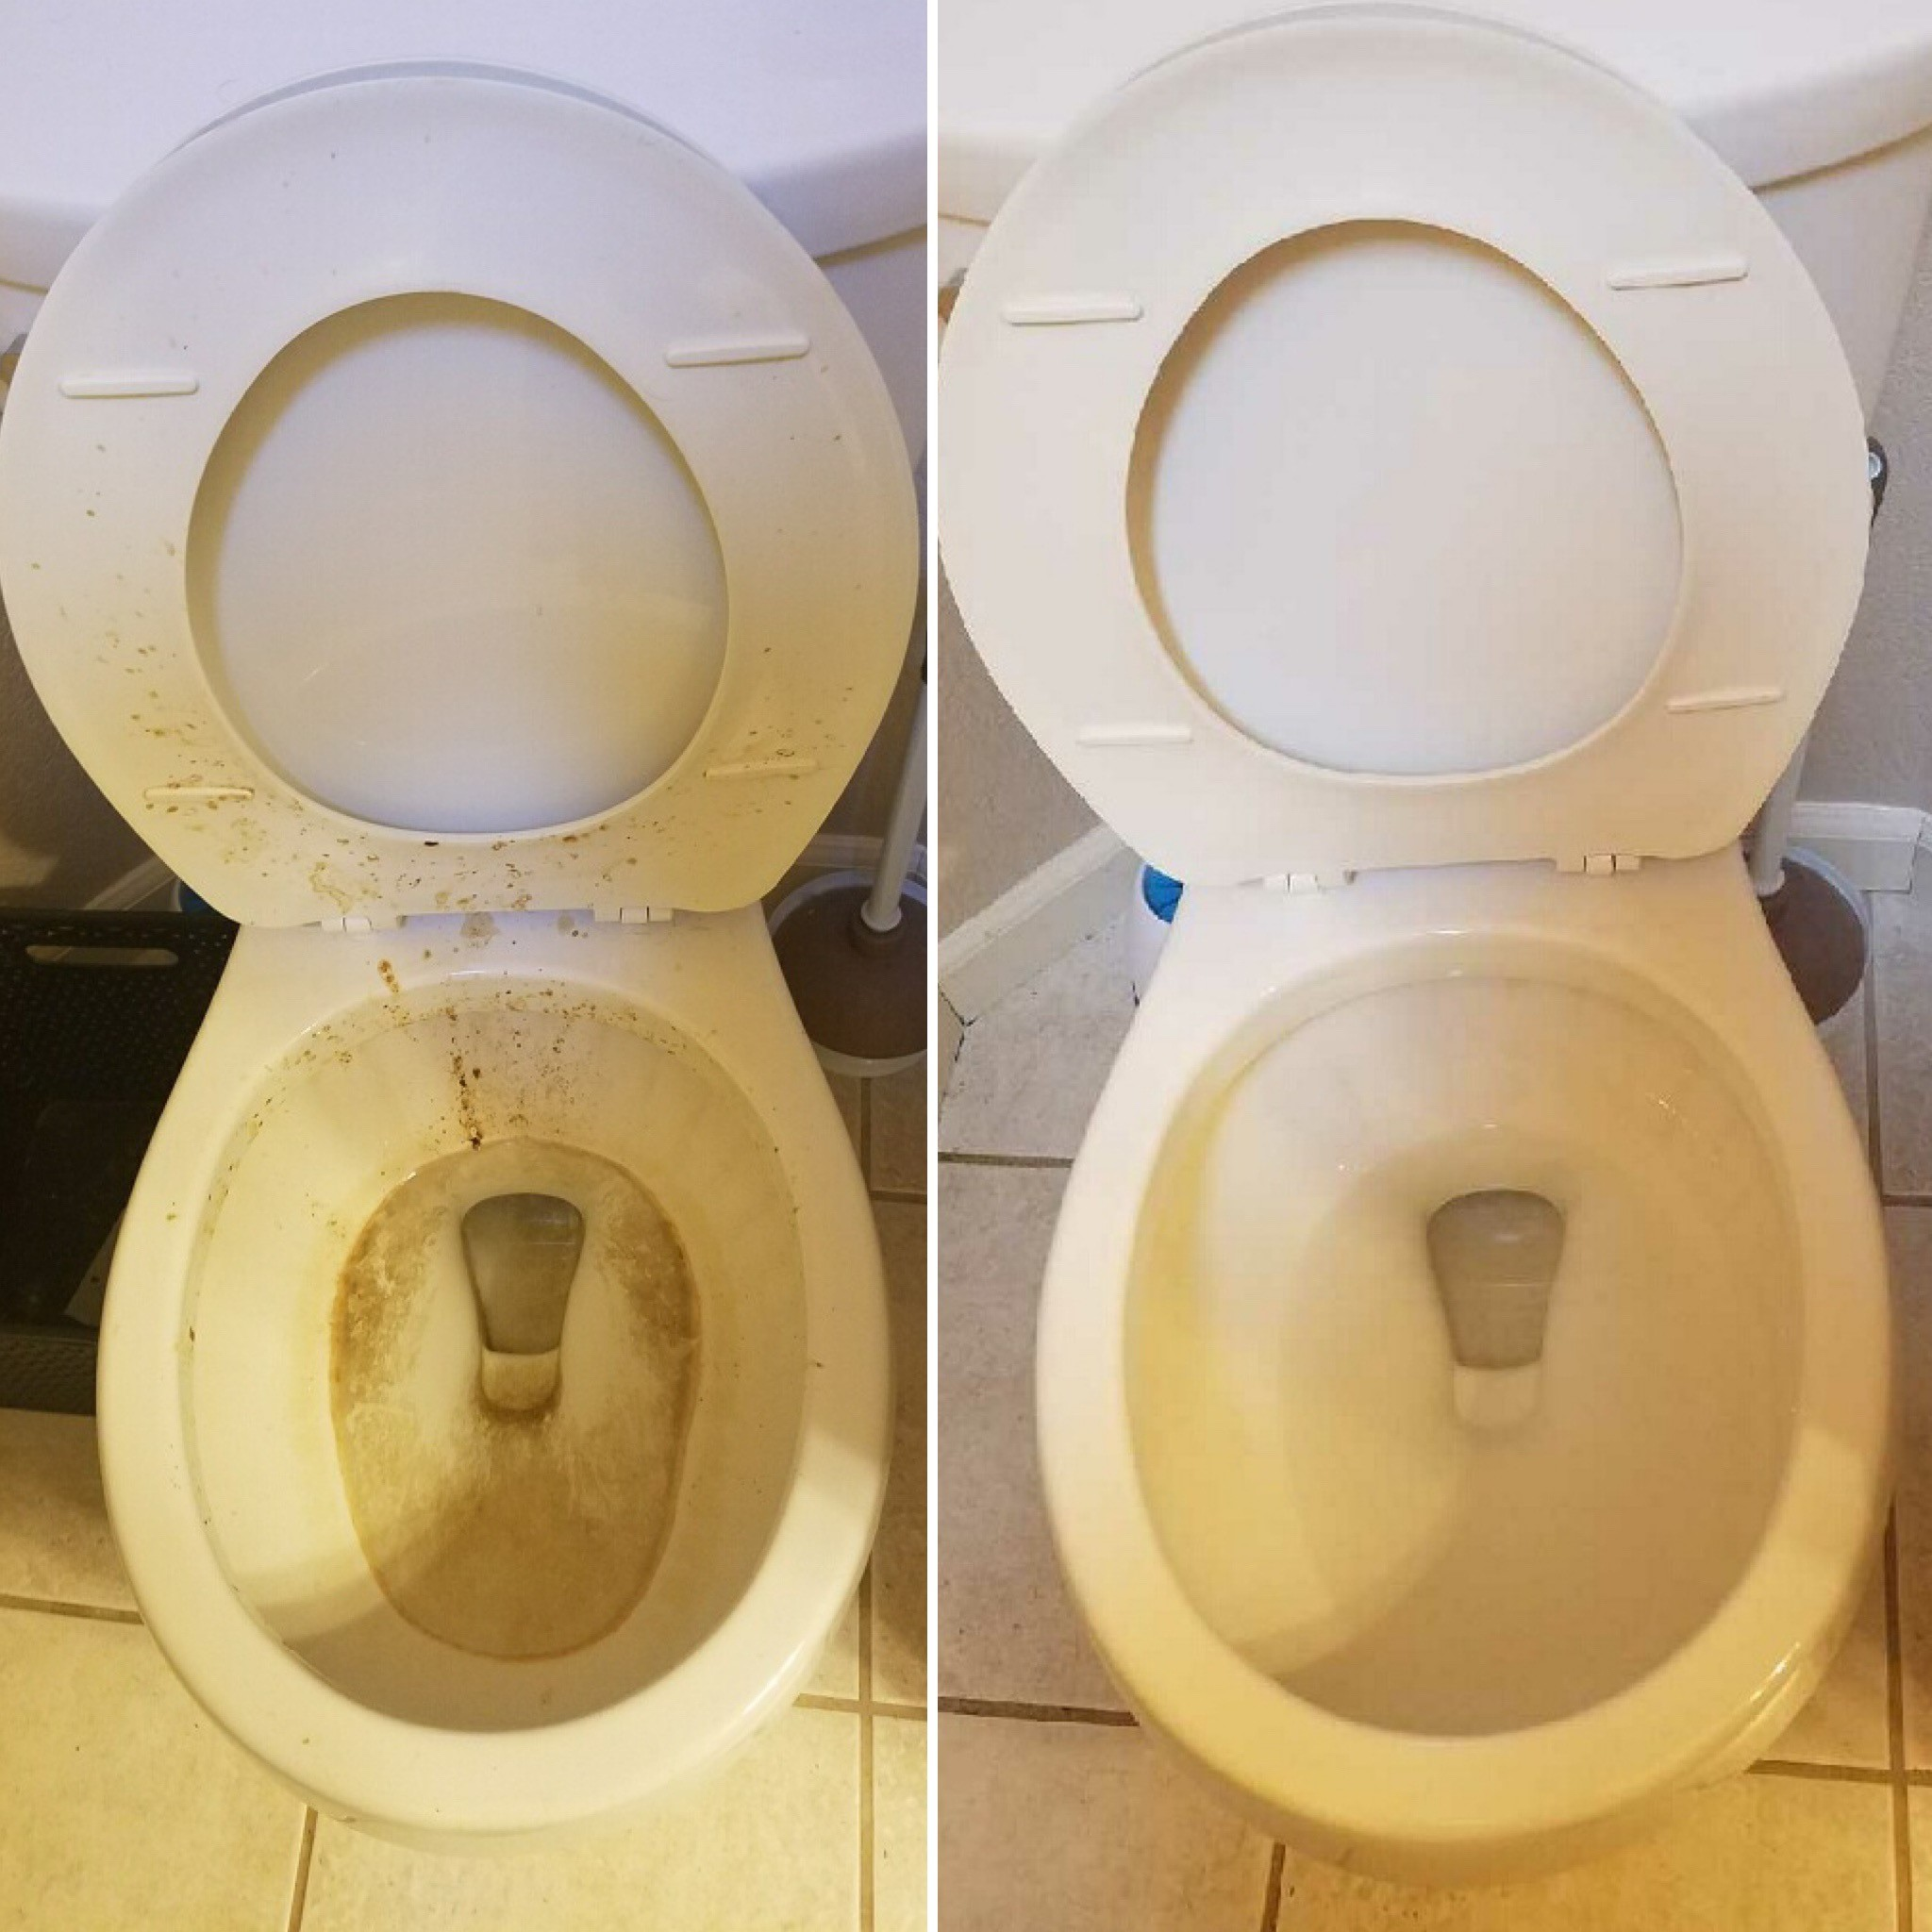 toilet before and after being cleaned